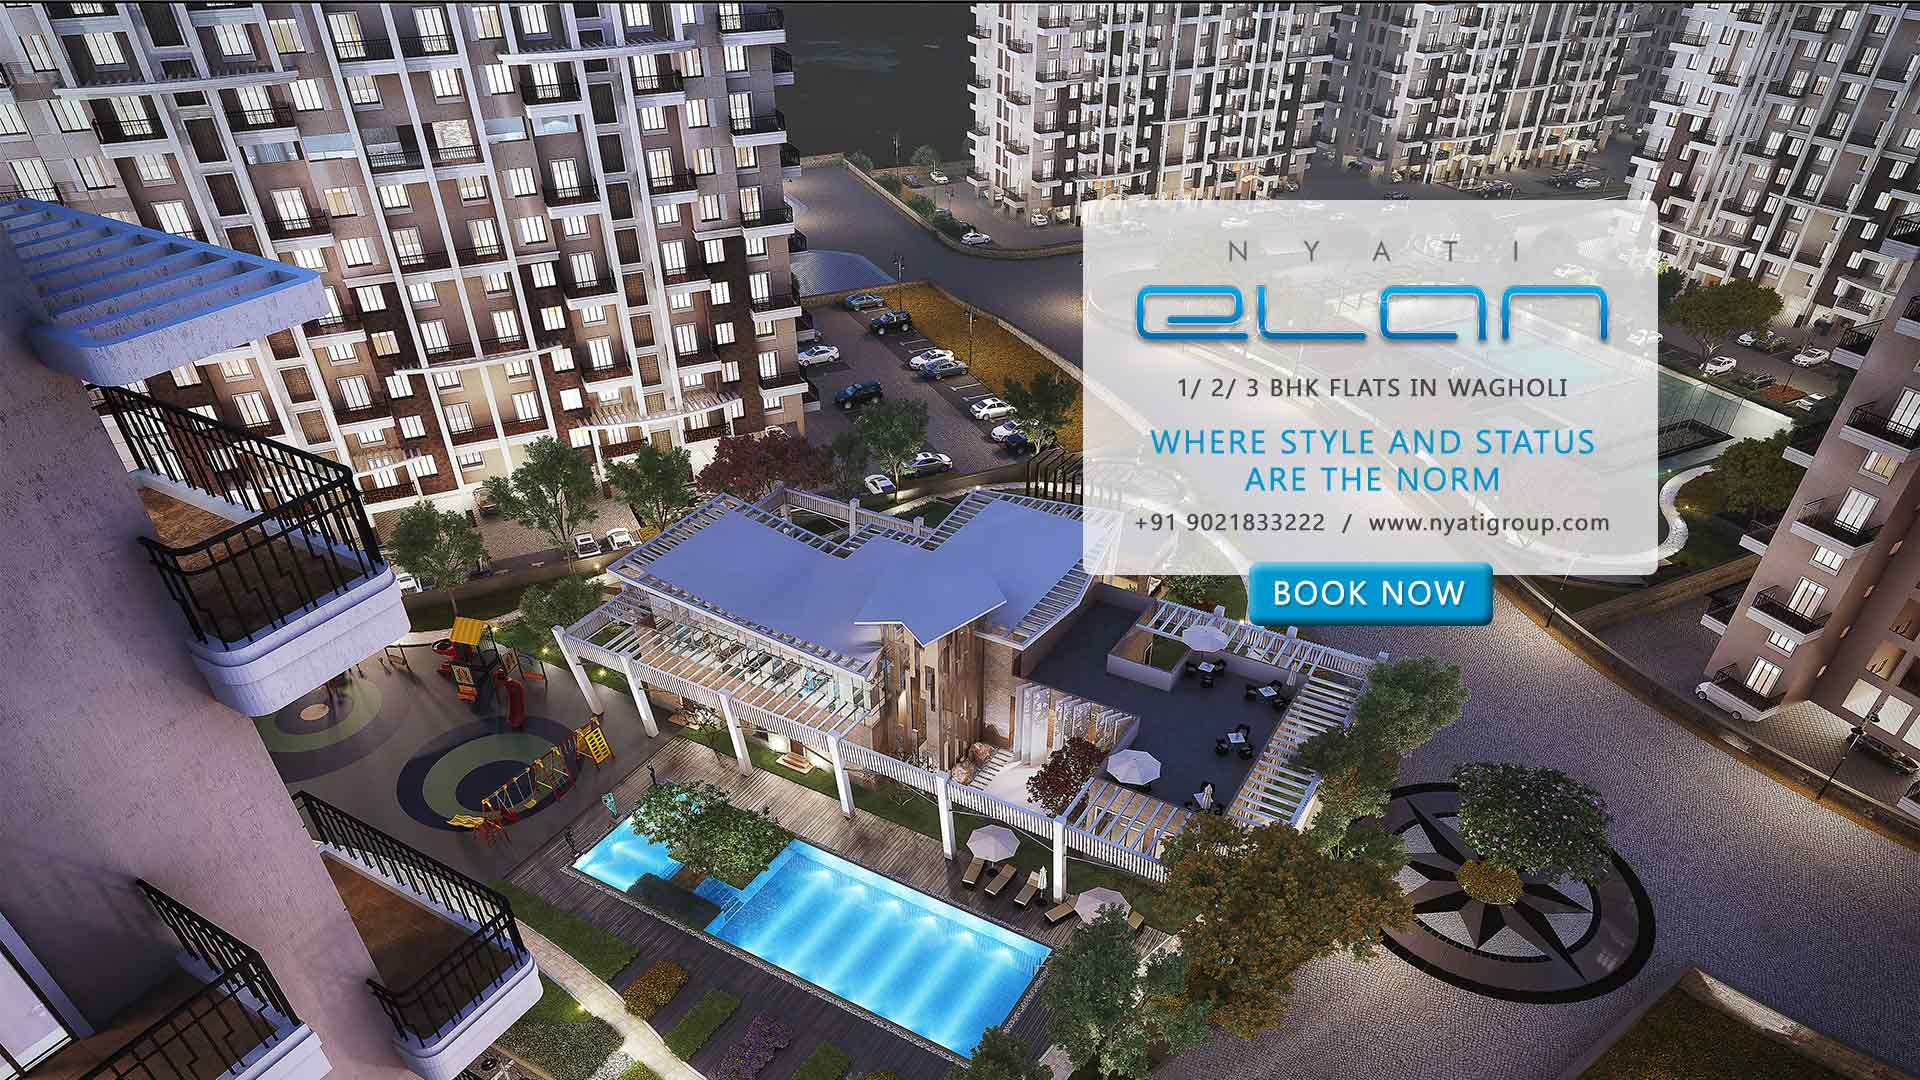 credai property in pune for sale 1 BHK 2 BHK 3 BHK